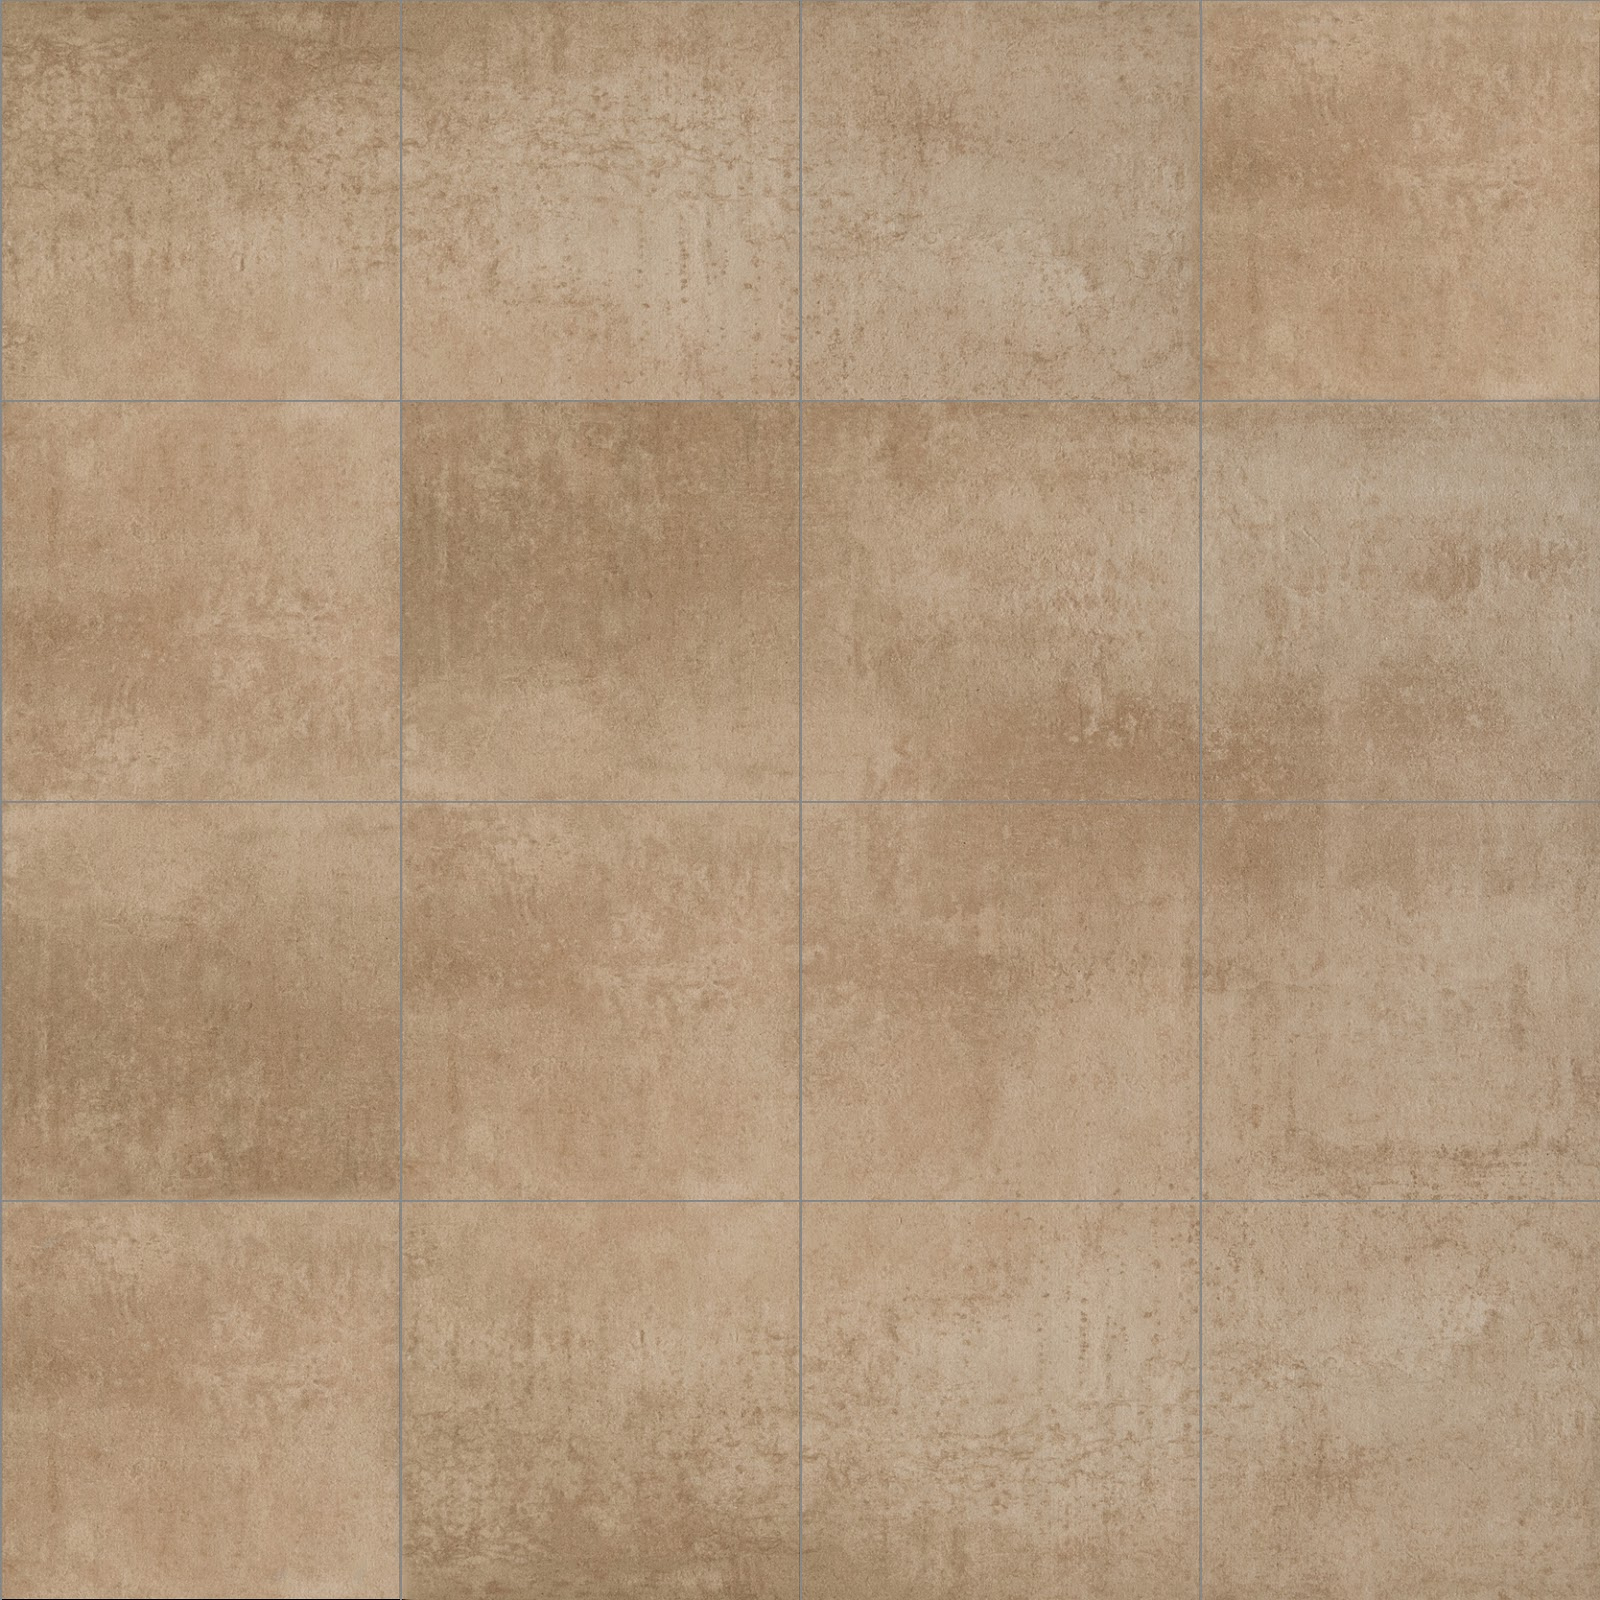 Concrete Tile Floor Texture Floor Tiles Dirty Concrete